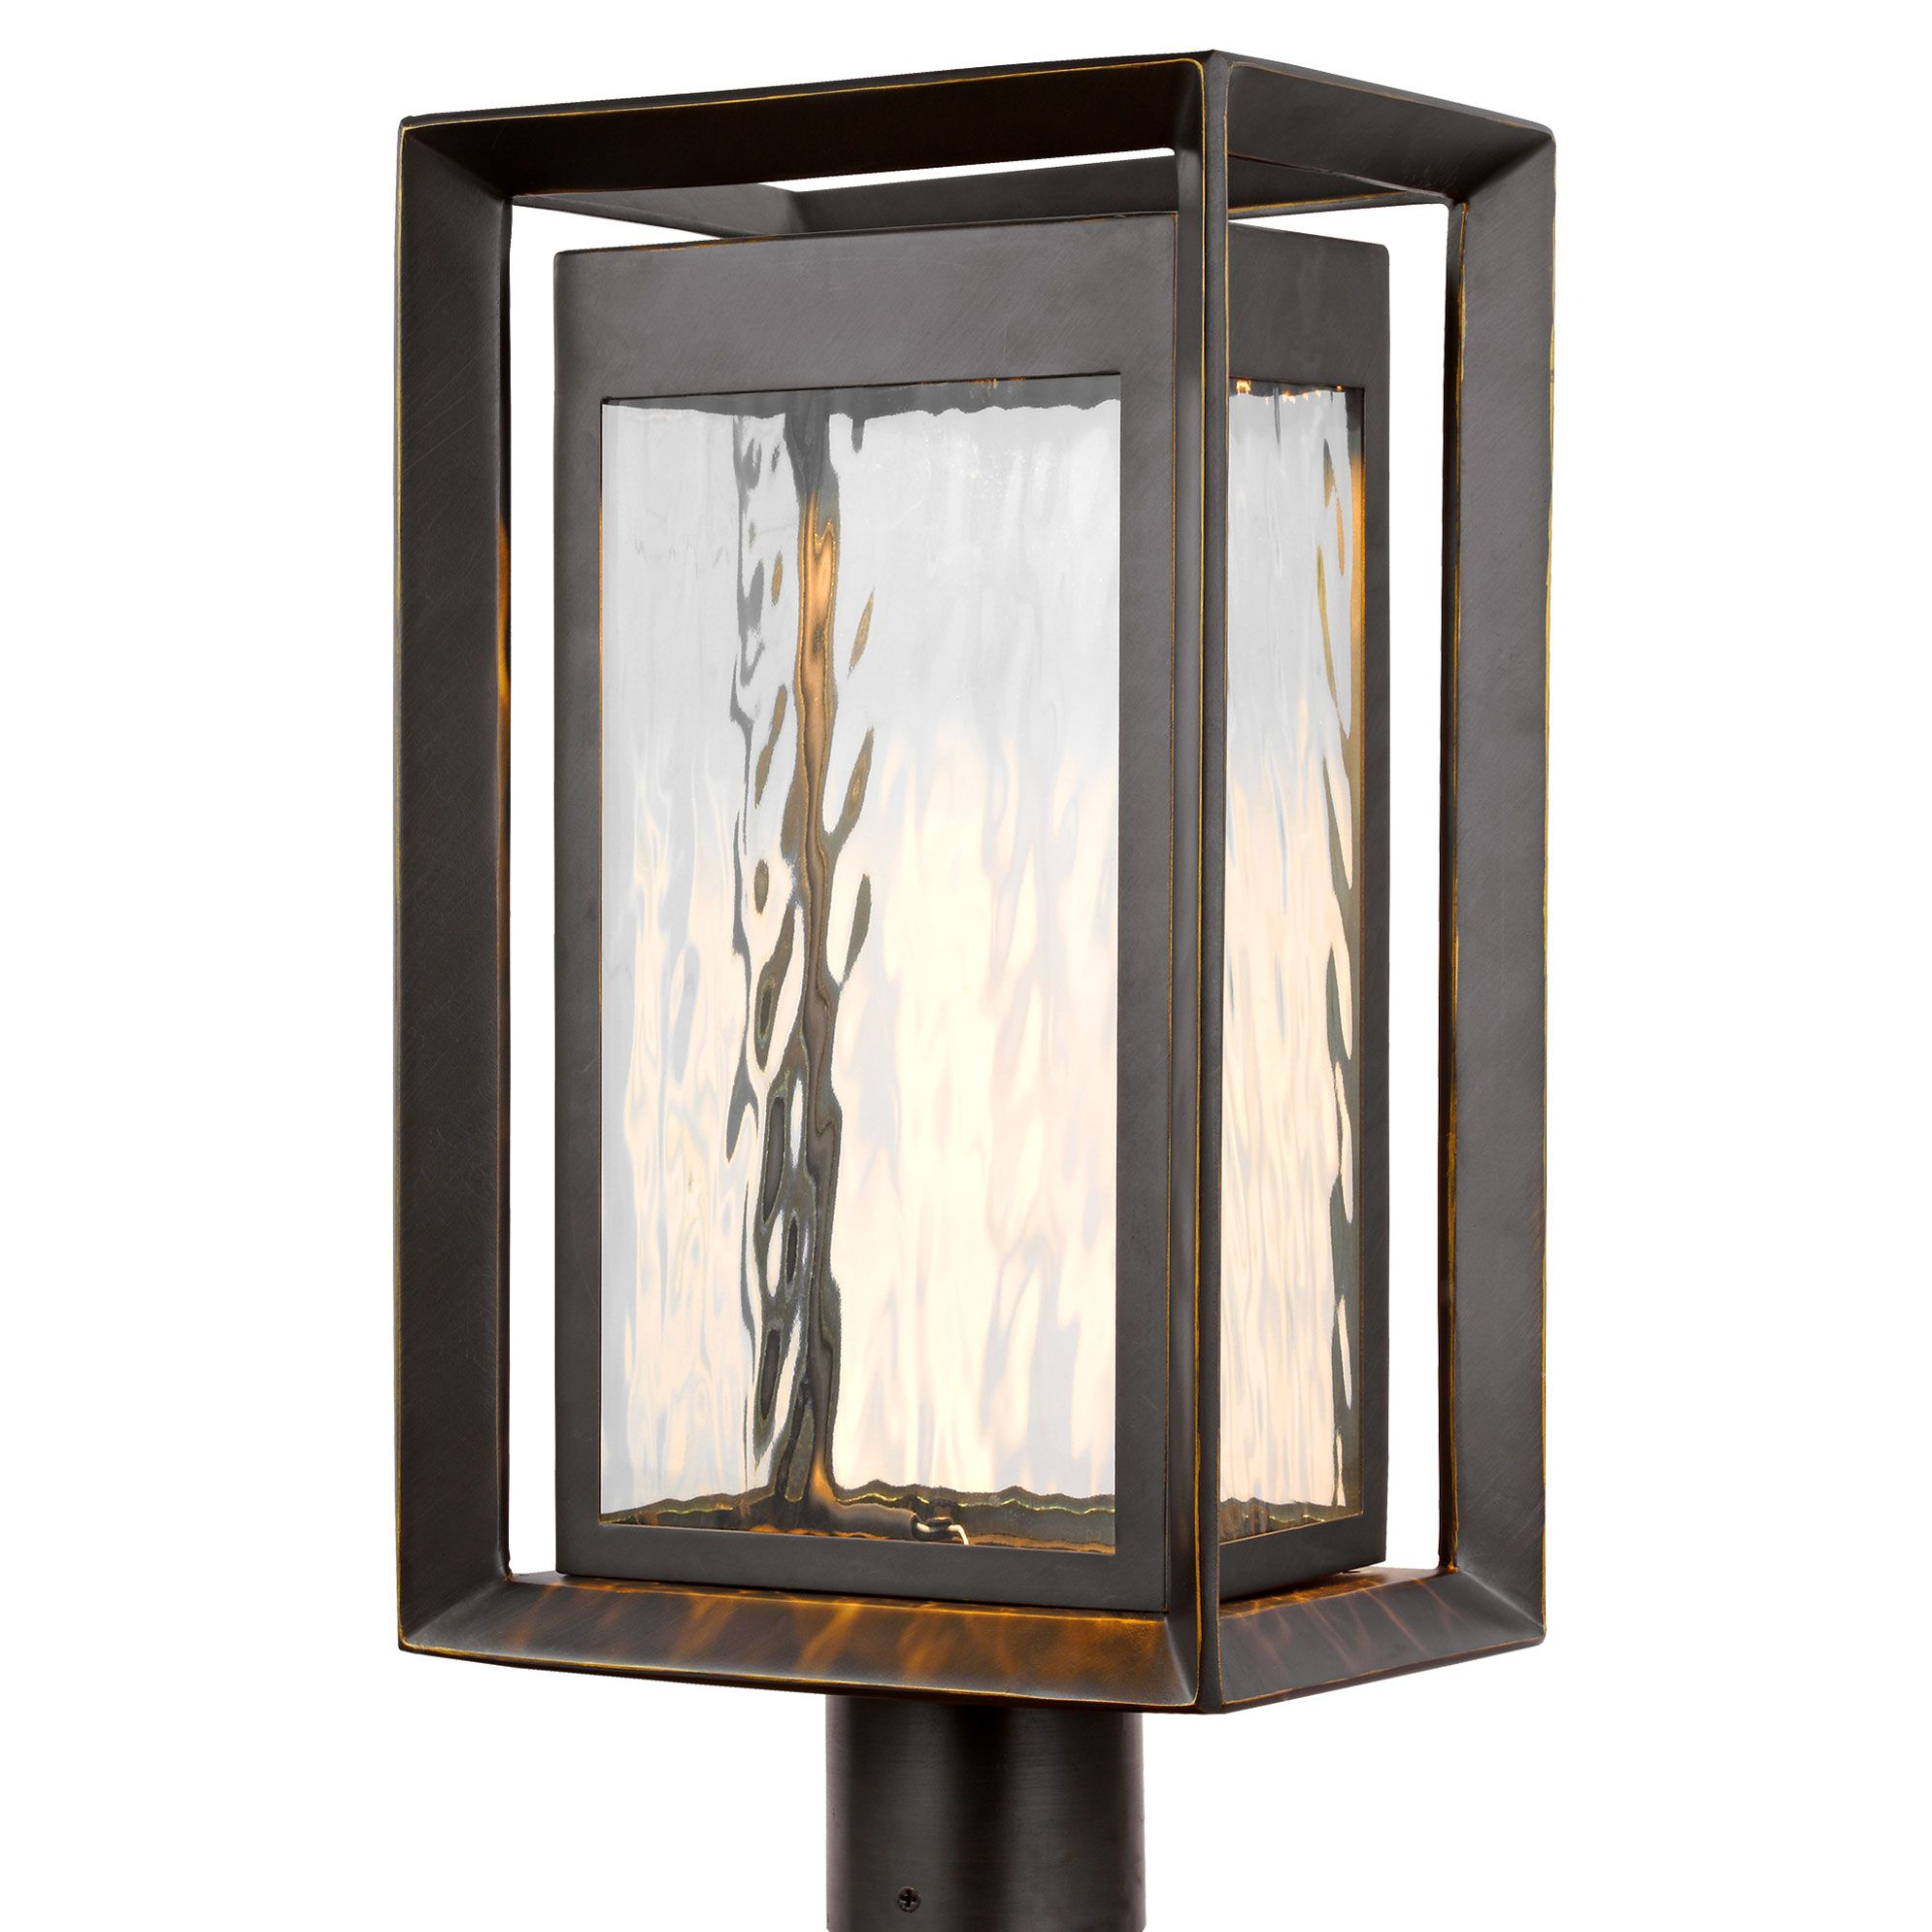 279 sale urbandale led outdoor post mount by feiss ol13707anbz 279 sale urbandale led outdoor post mount by feiss ol13707anbz led workwithnaturefo